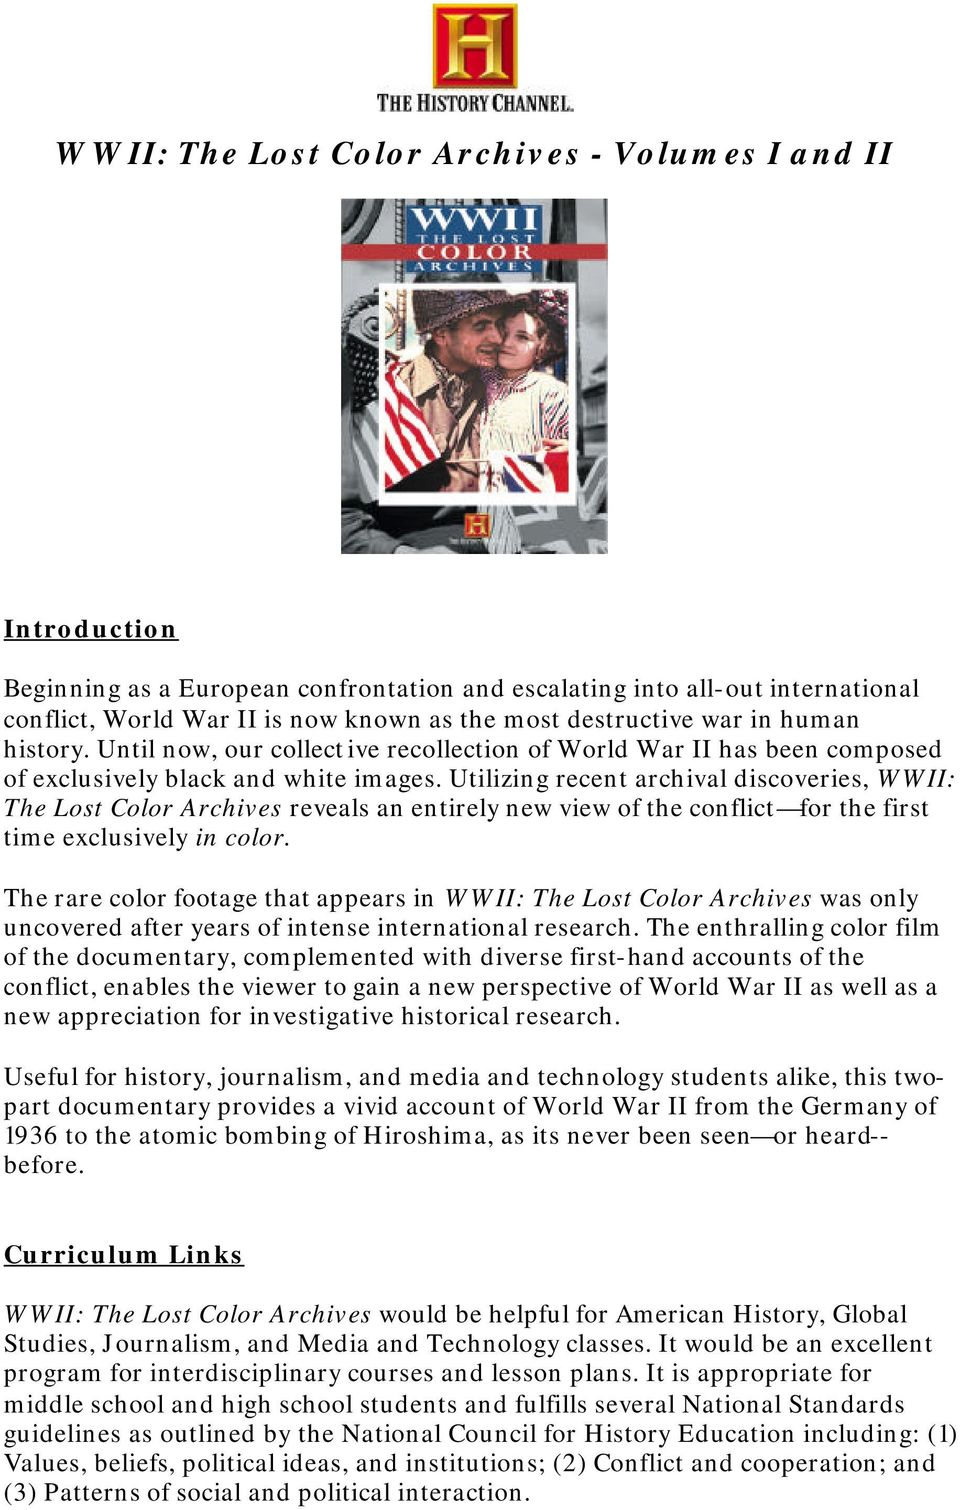 WWII: The Lost Color Archives - Volumes I and II - PDF